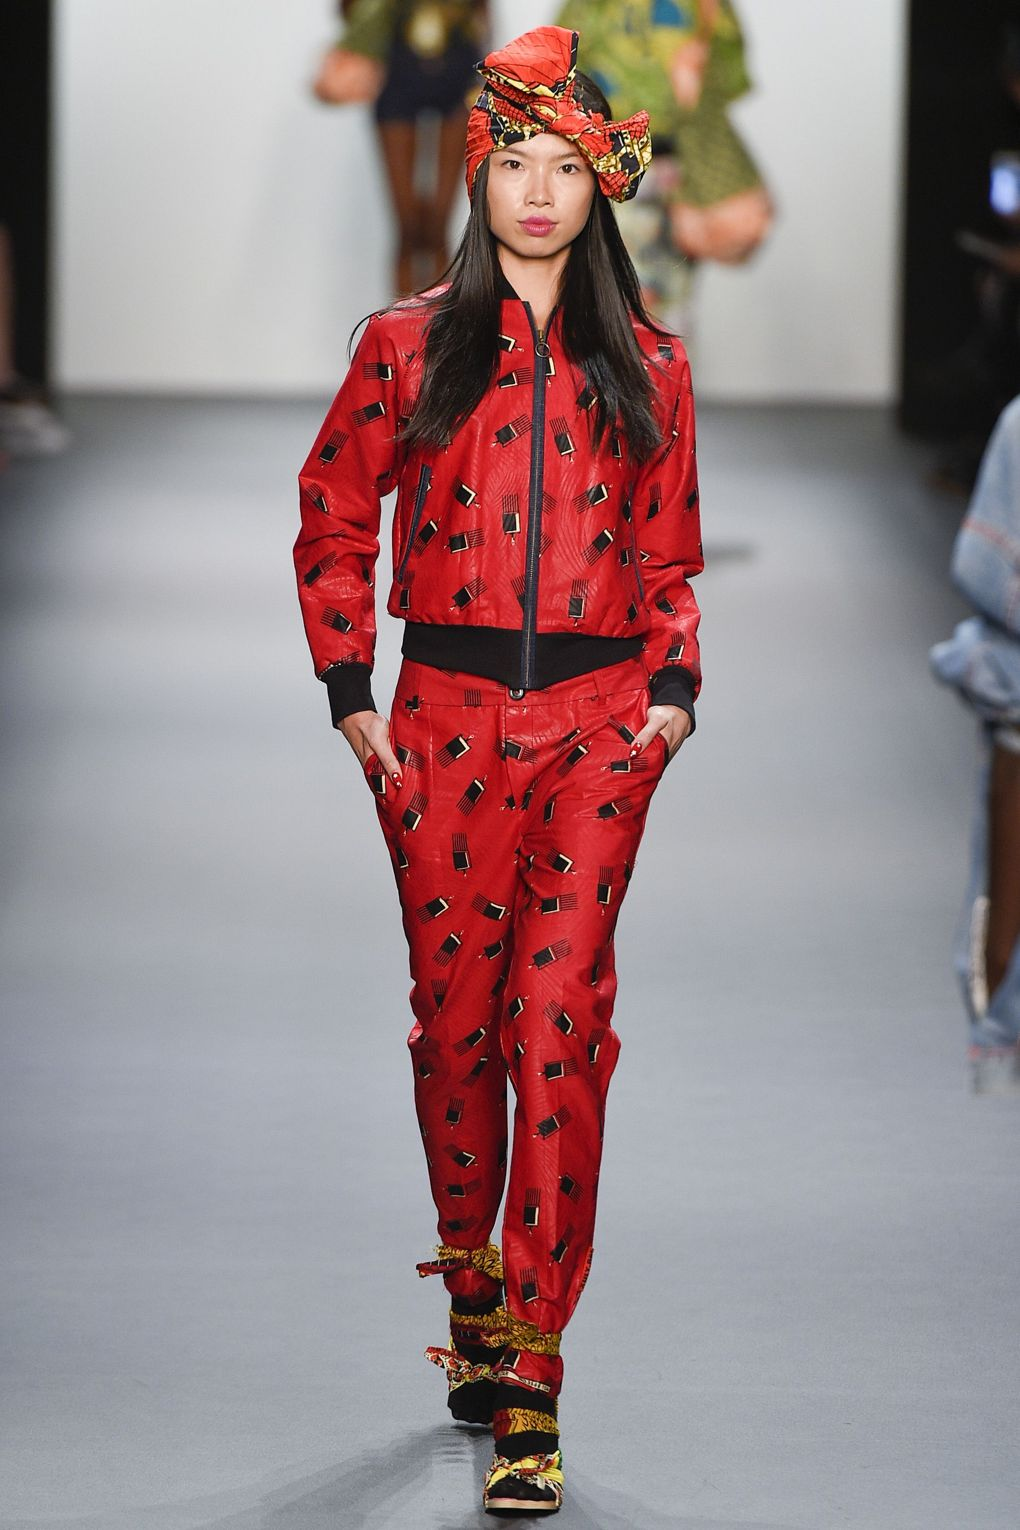 fashion-week-xuly-be%cc%88t-xuly-be%cc%88t-sprigsummer-2016-ready-to-wear-collection-8